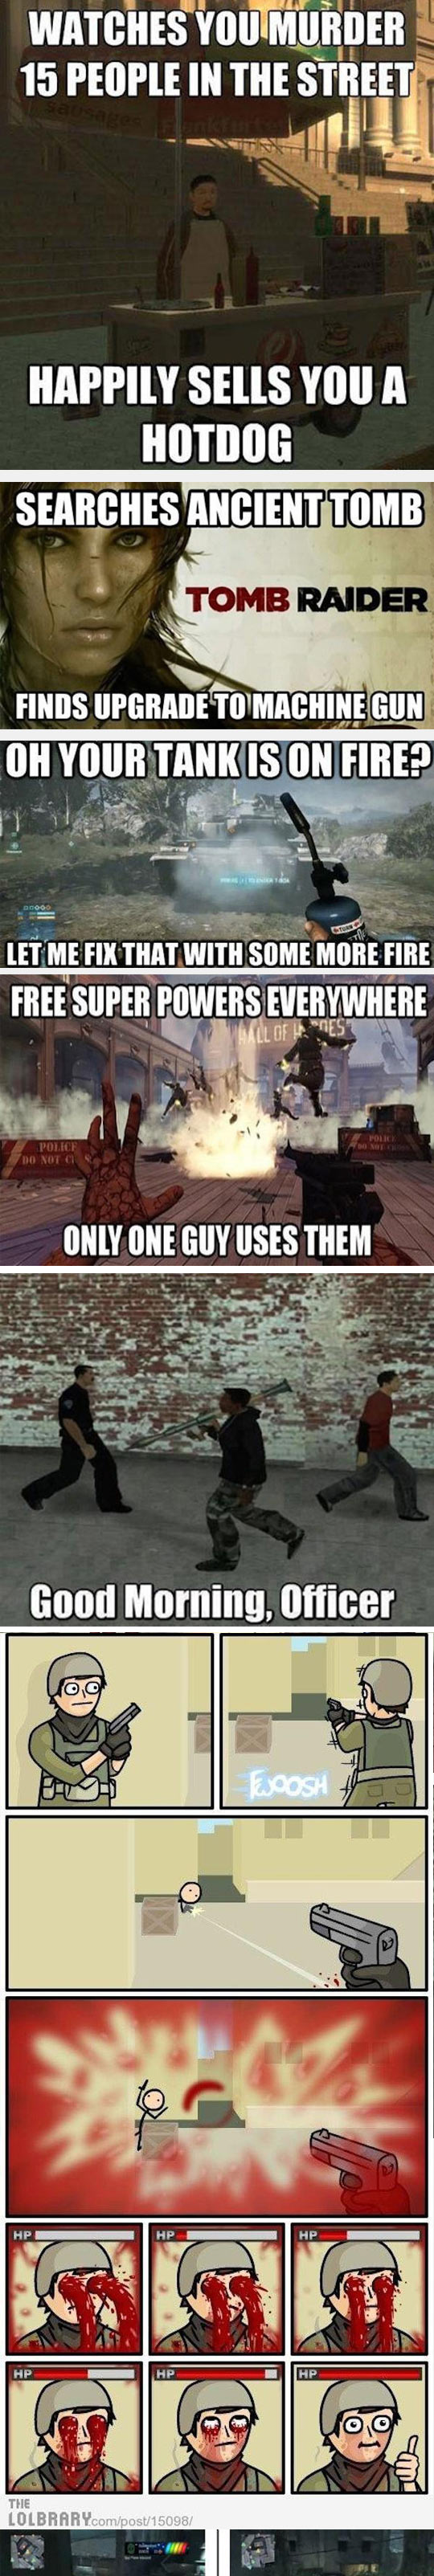 funny-video-game-GTA-logic